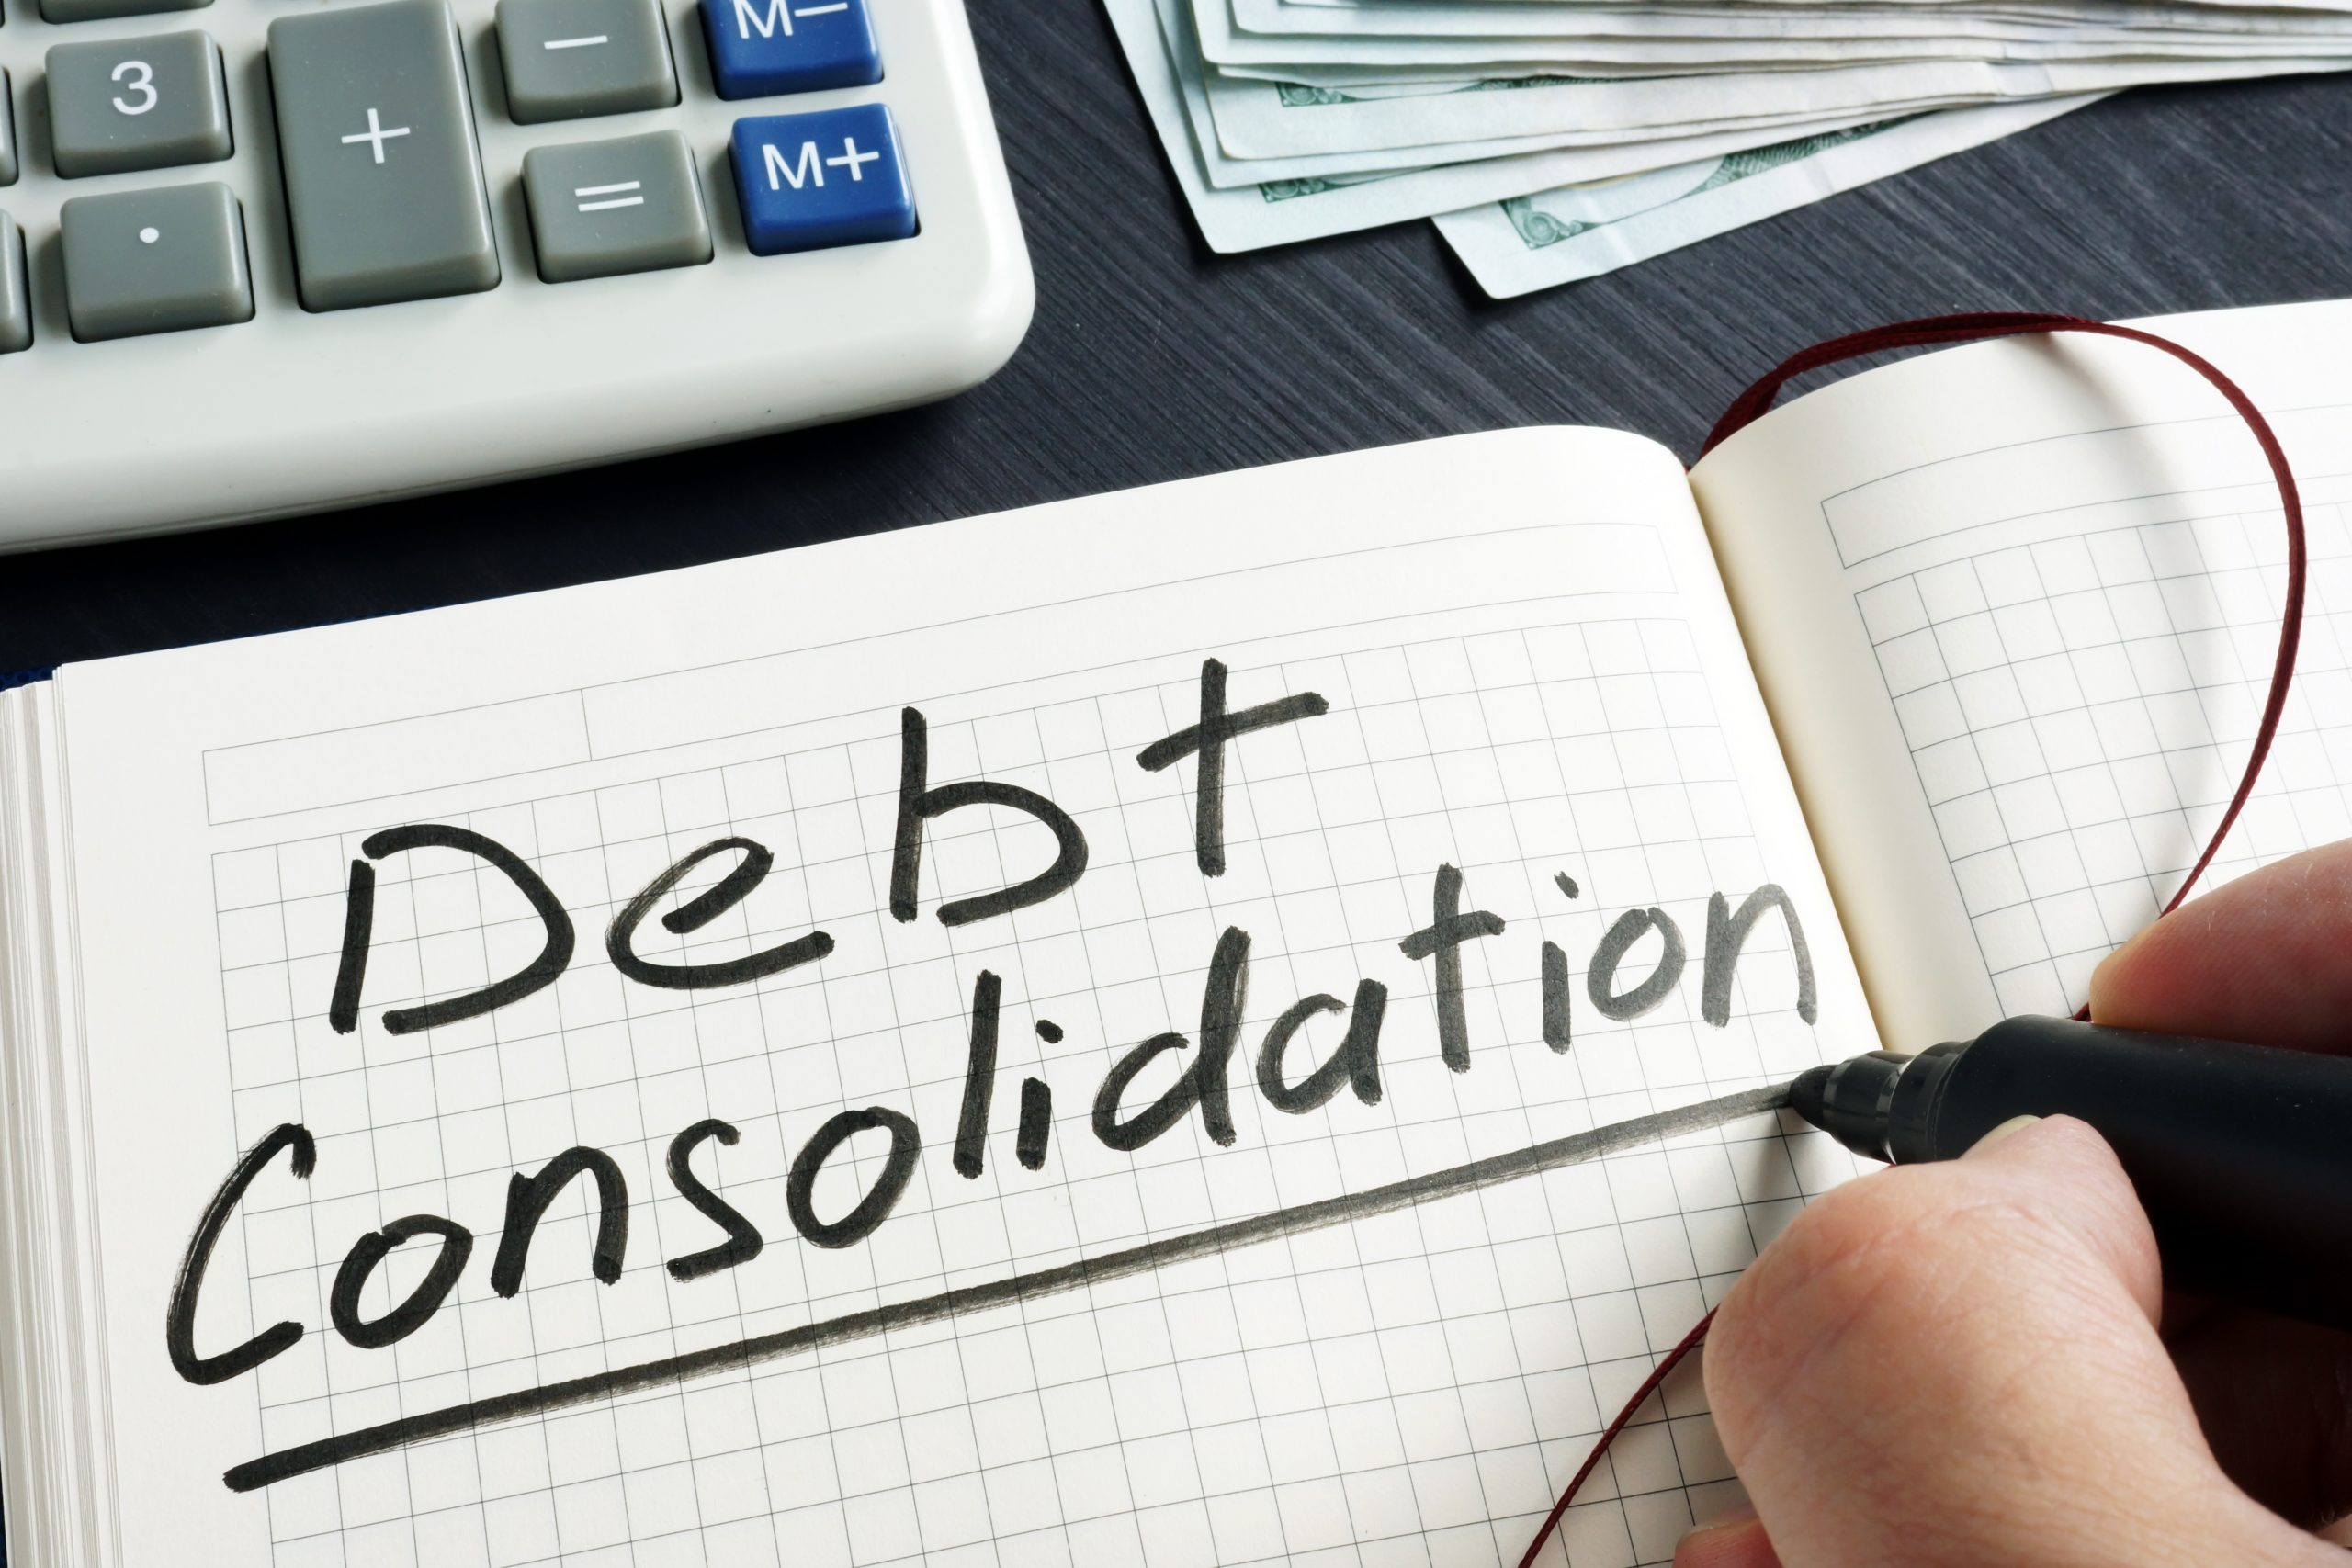 debt consolidation on notepad